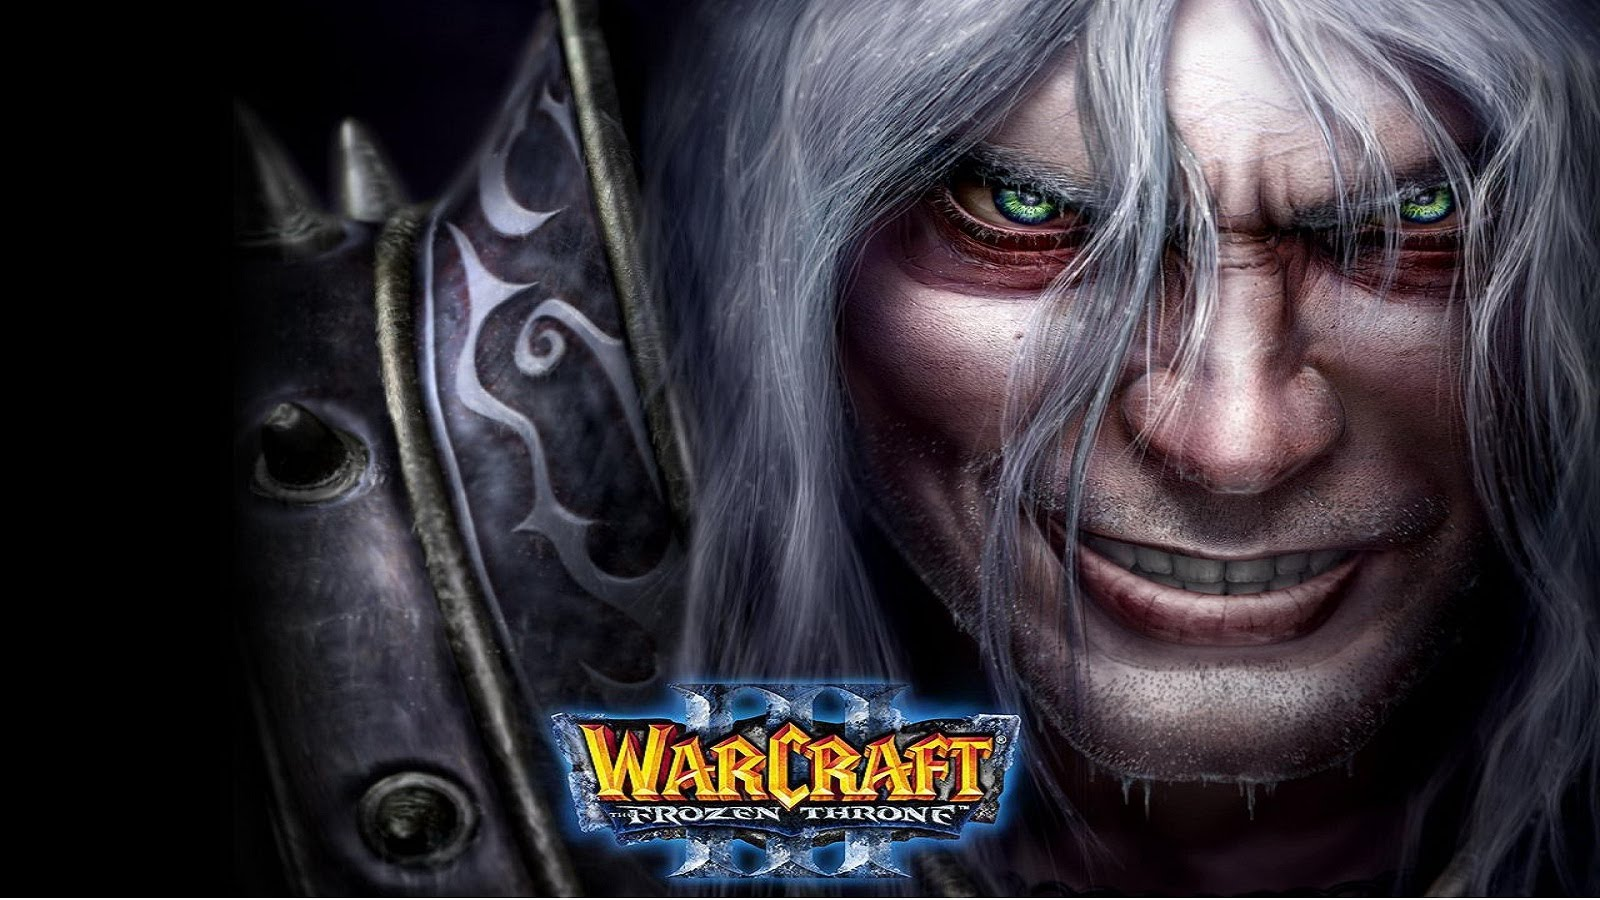 Warcraft III The Frozen Throne free full pc game for download